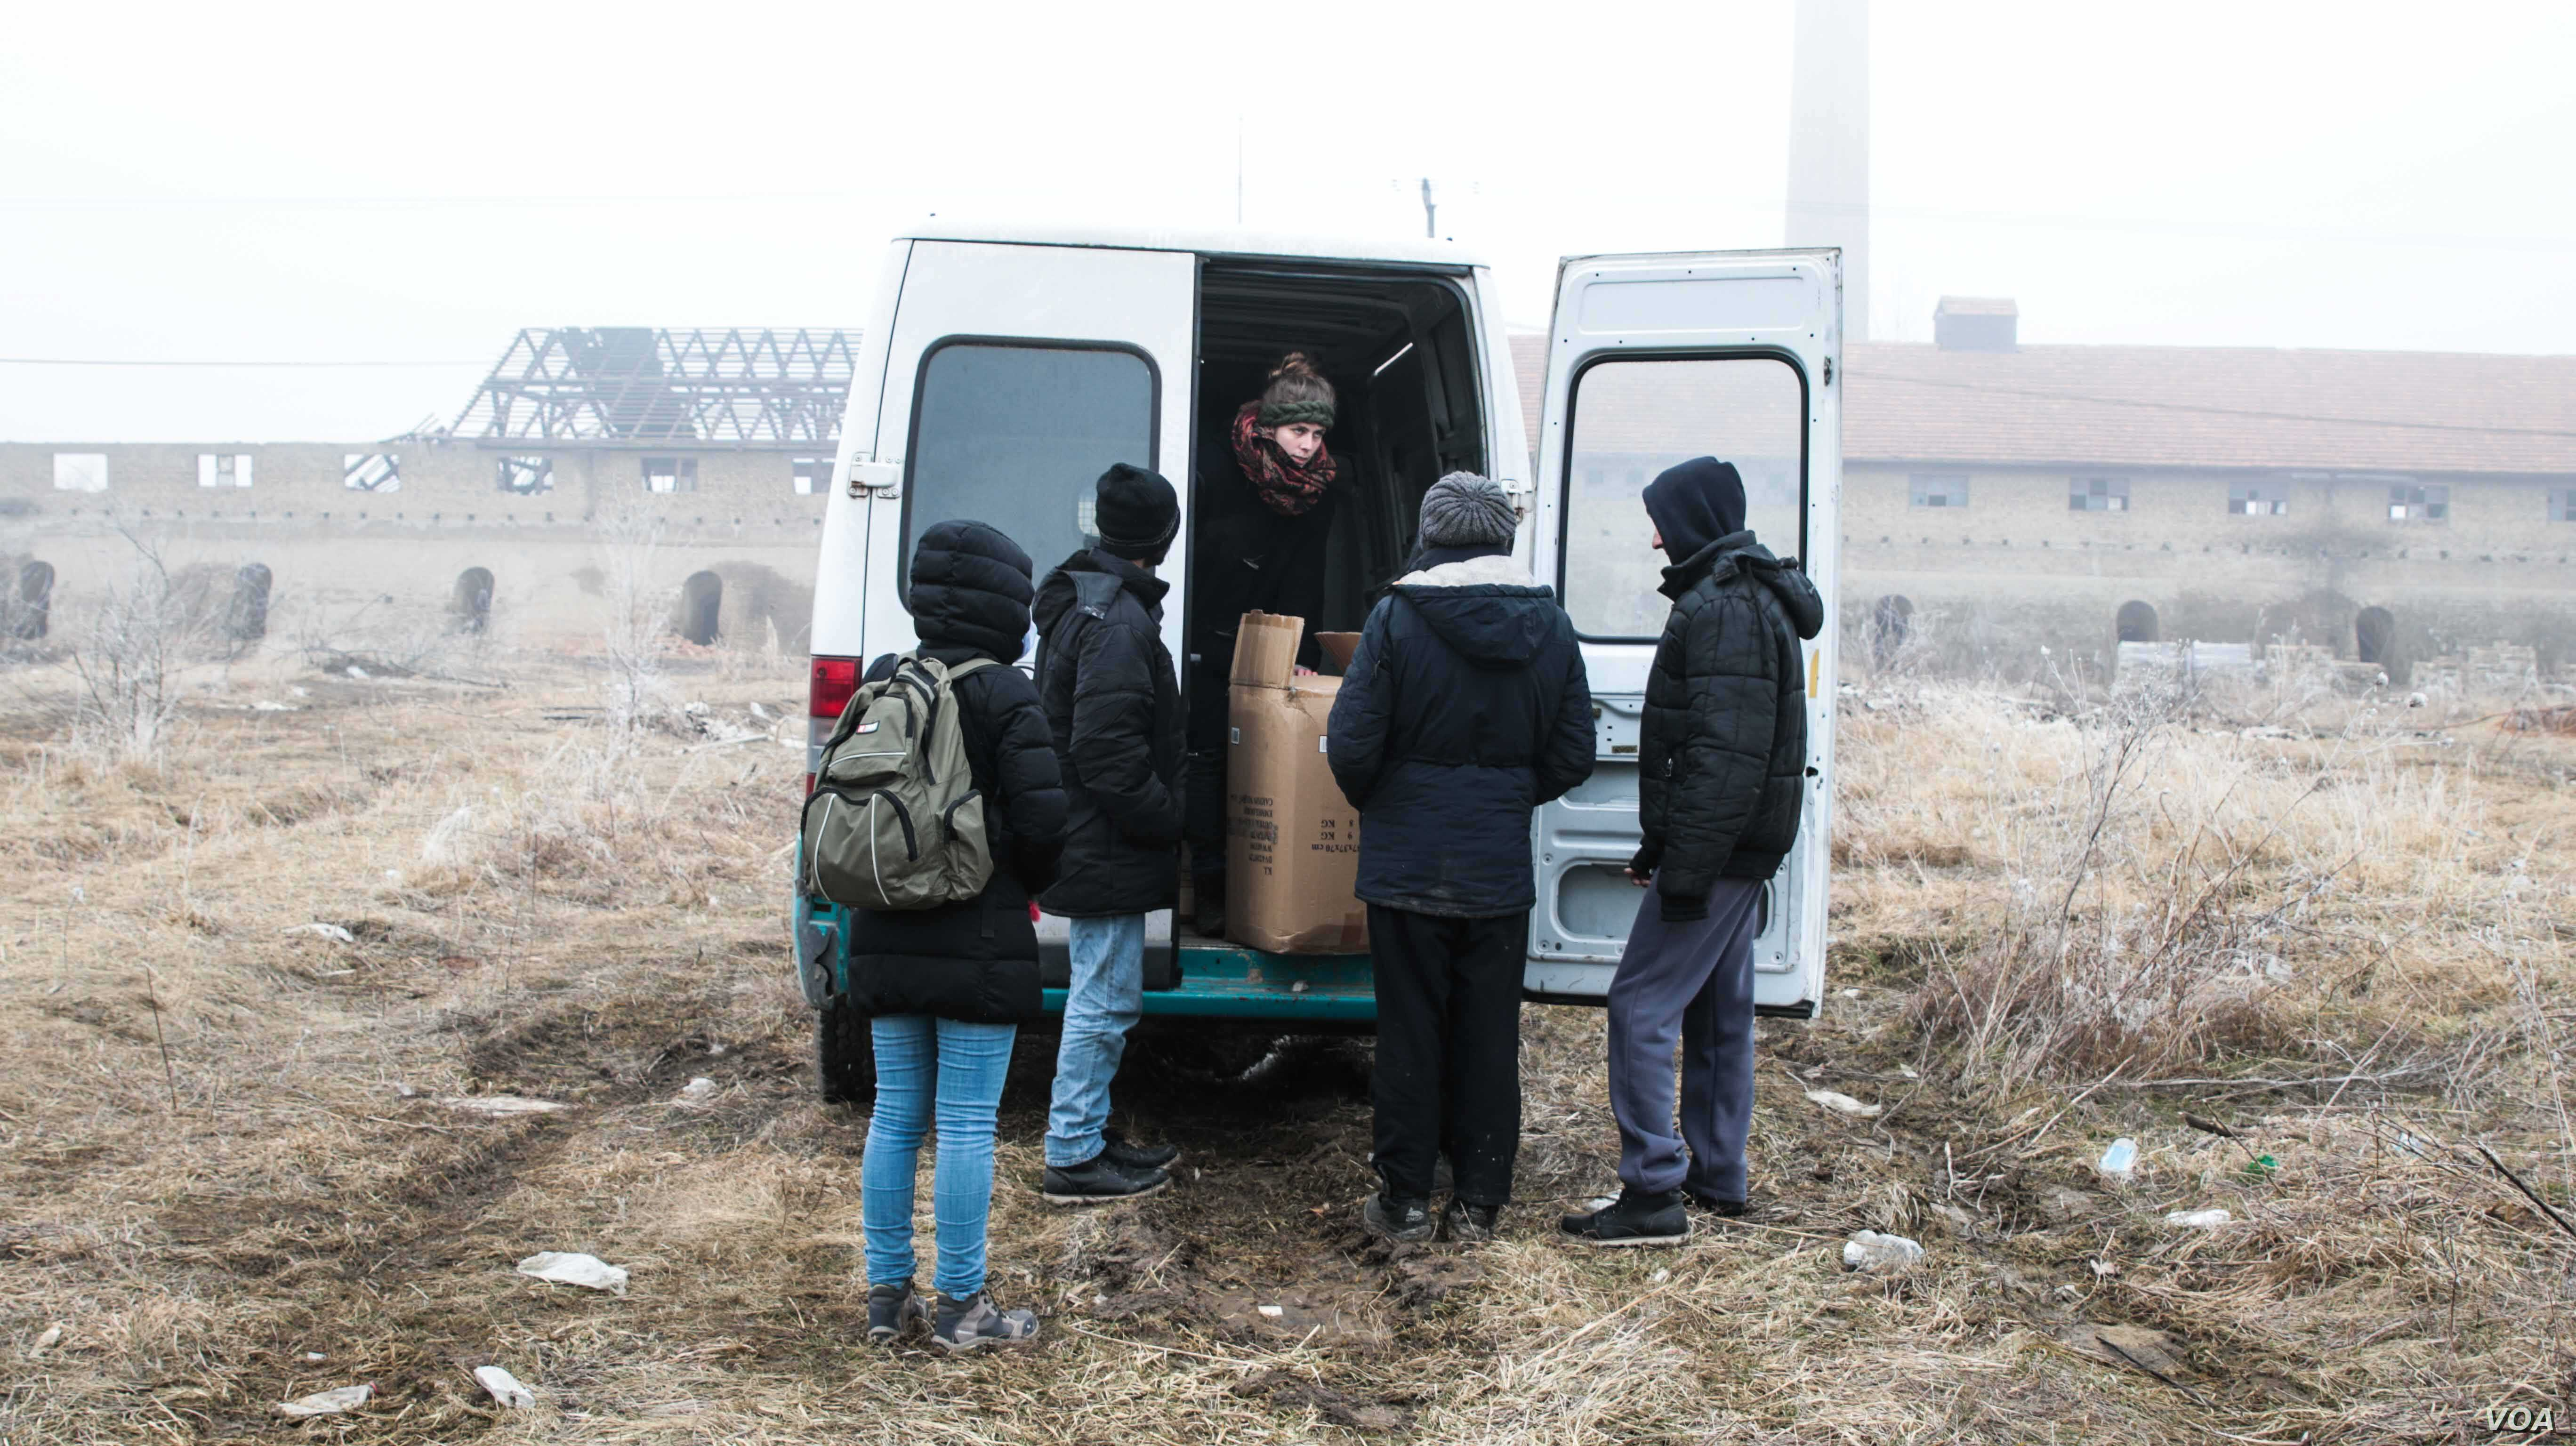 Refugees and migrants live in scattered locations along the Serbian/Hungarian border. Many live in this former brick factory, amid appalling conditions as they wait for the right time to attempt a border crossing. (J. Owens for VOA)